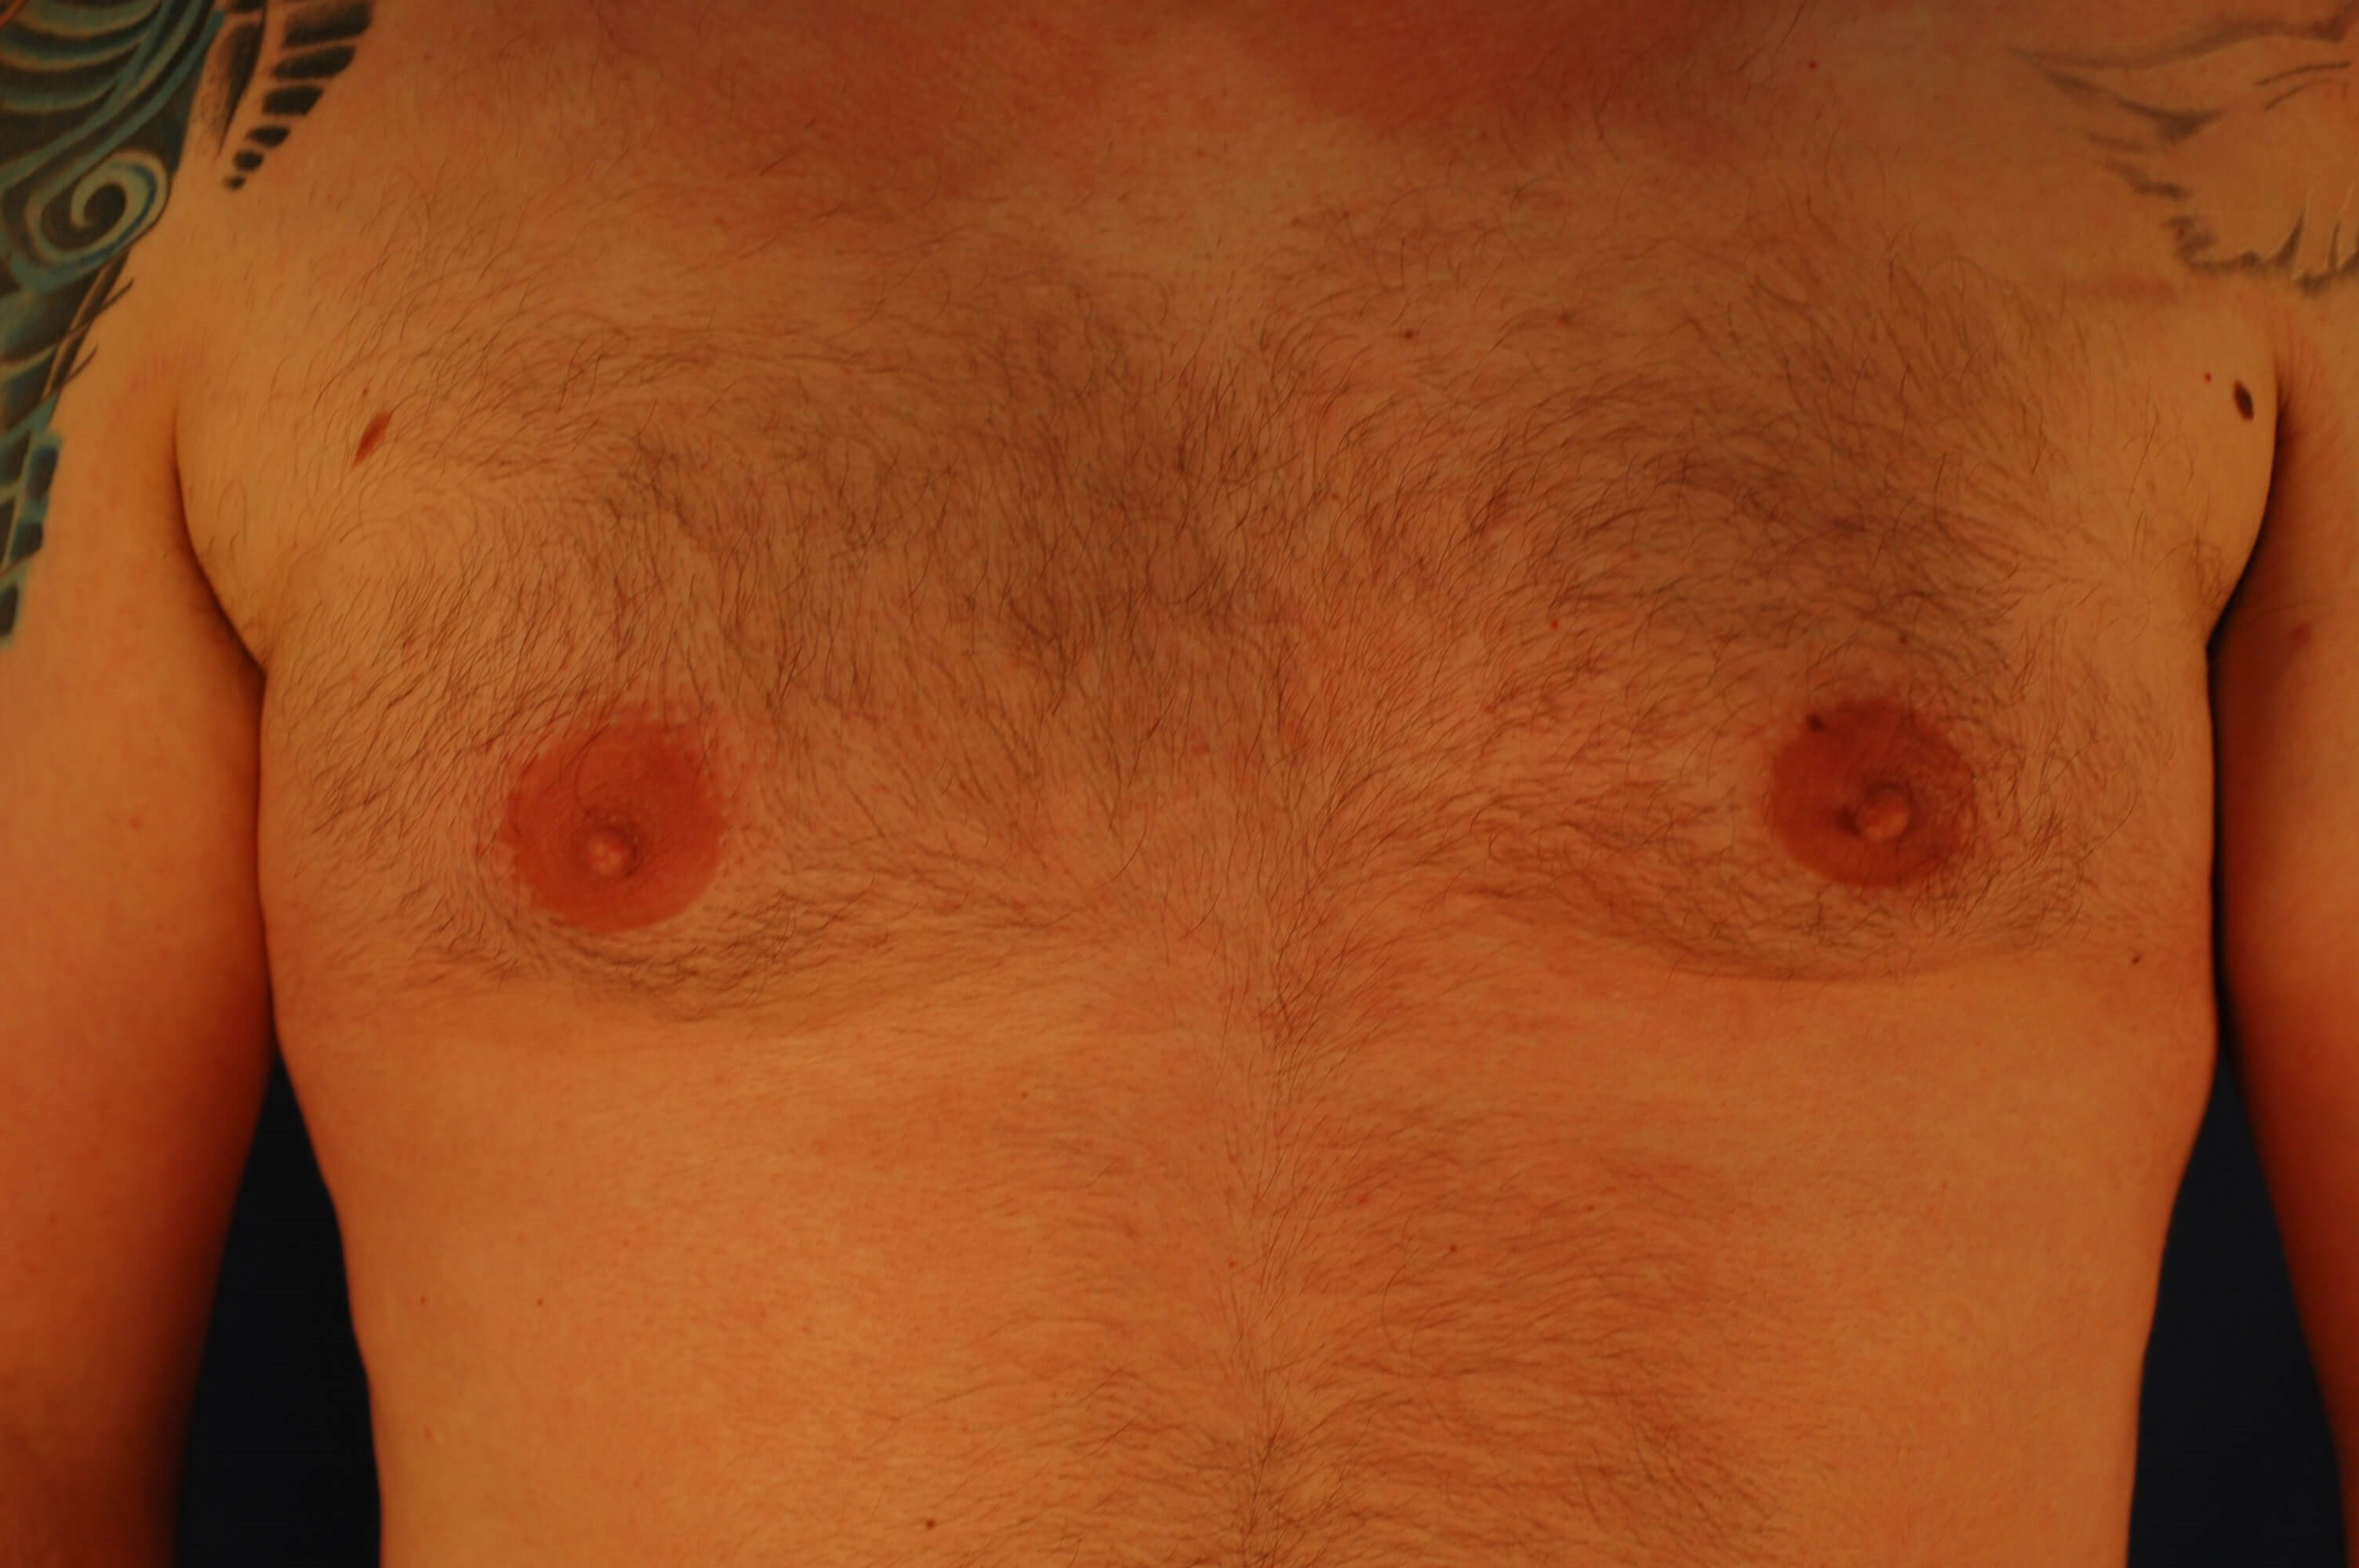 Newport Beach Gynecomastia Front View Before